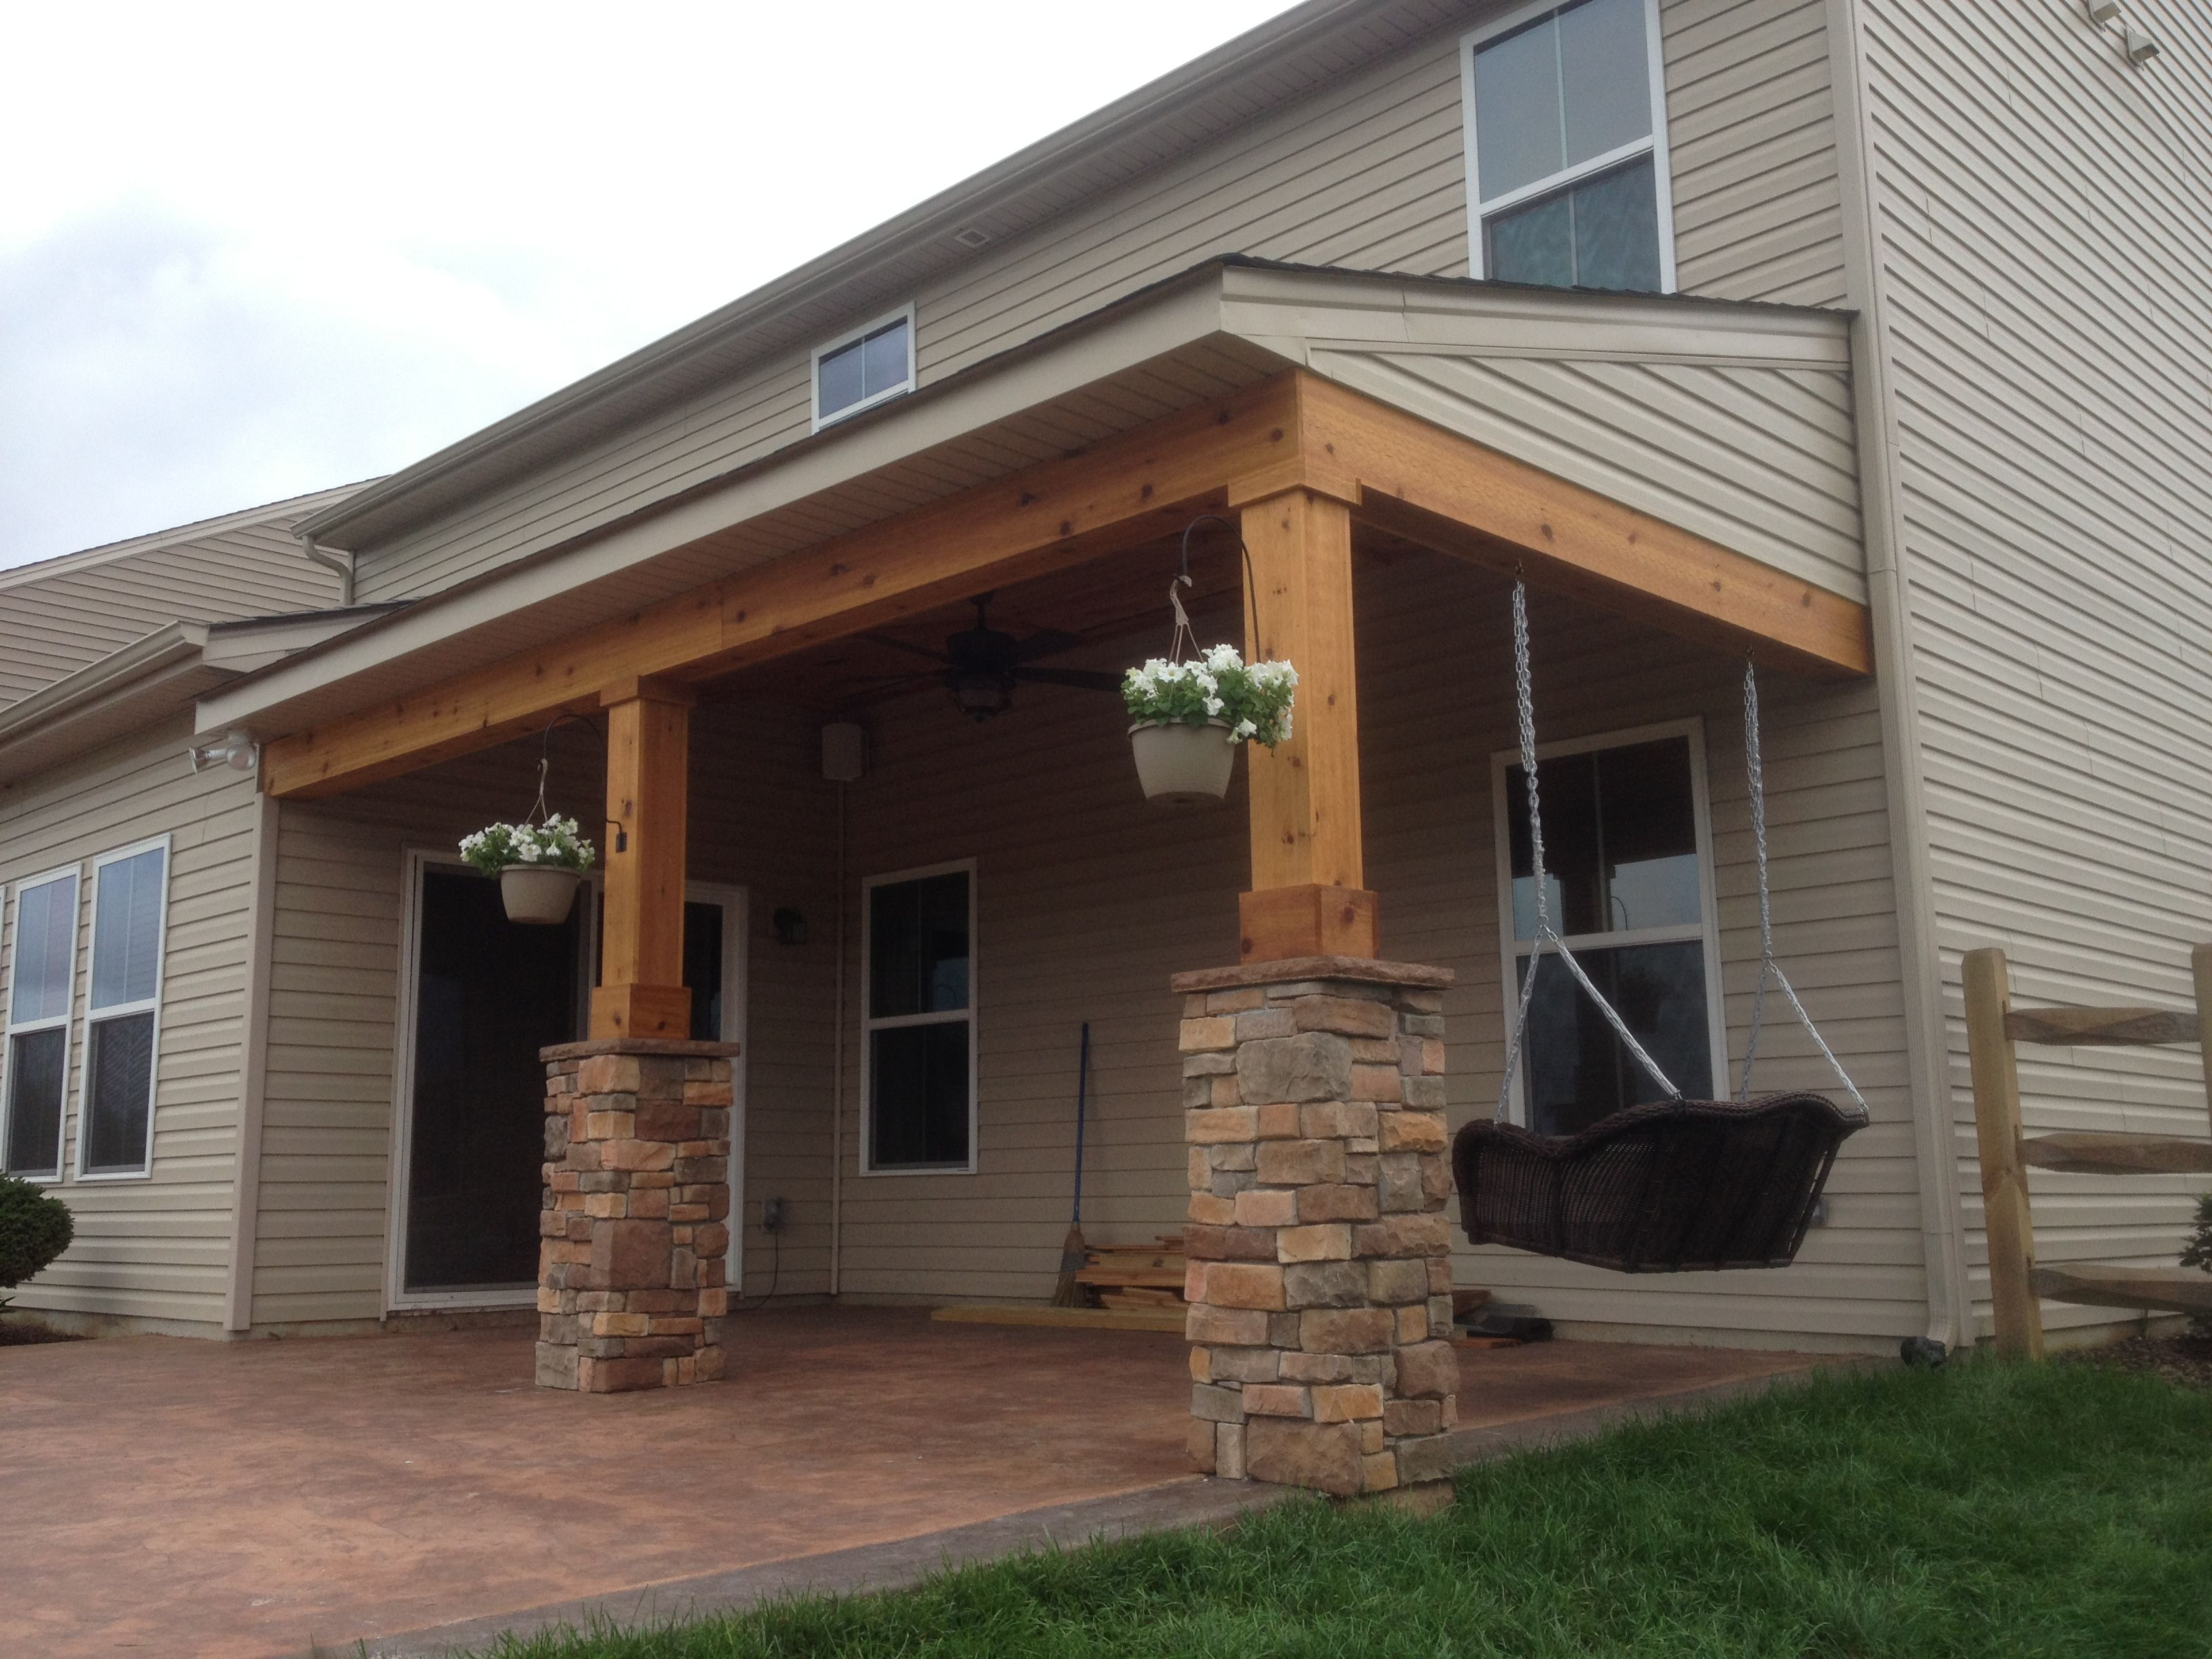 Covered Porch All Cedar Trim And Cedar Tongue And Groove Ceiling With Stone  Columns,ceiling